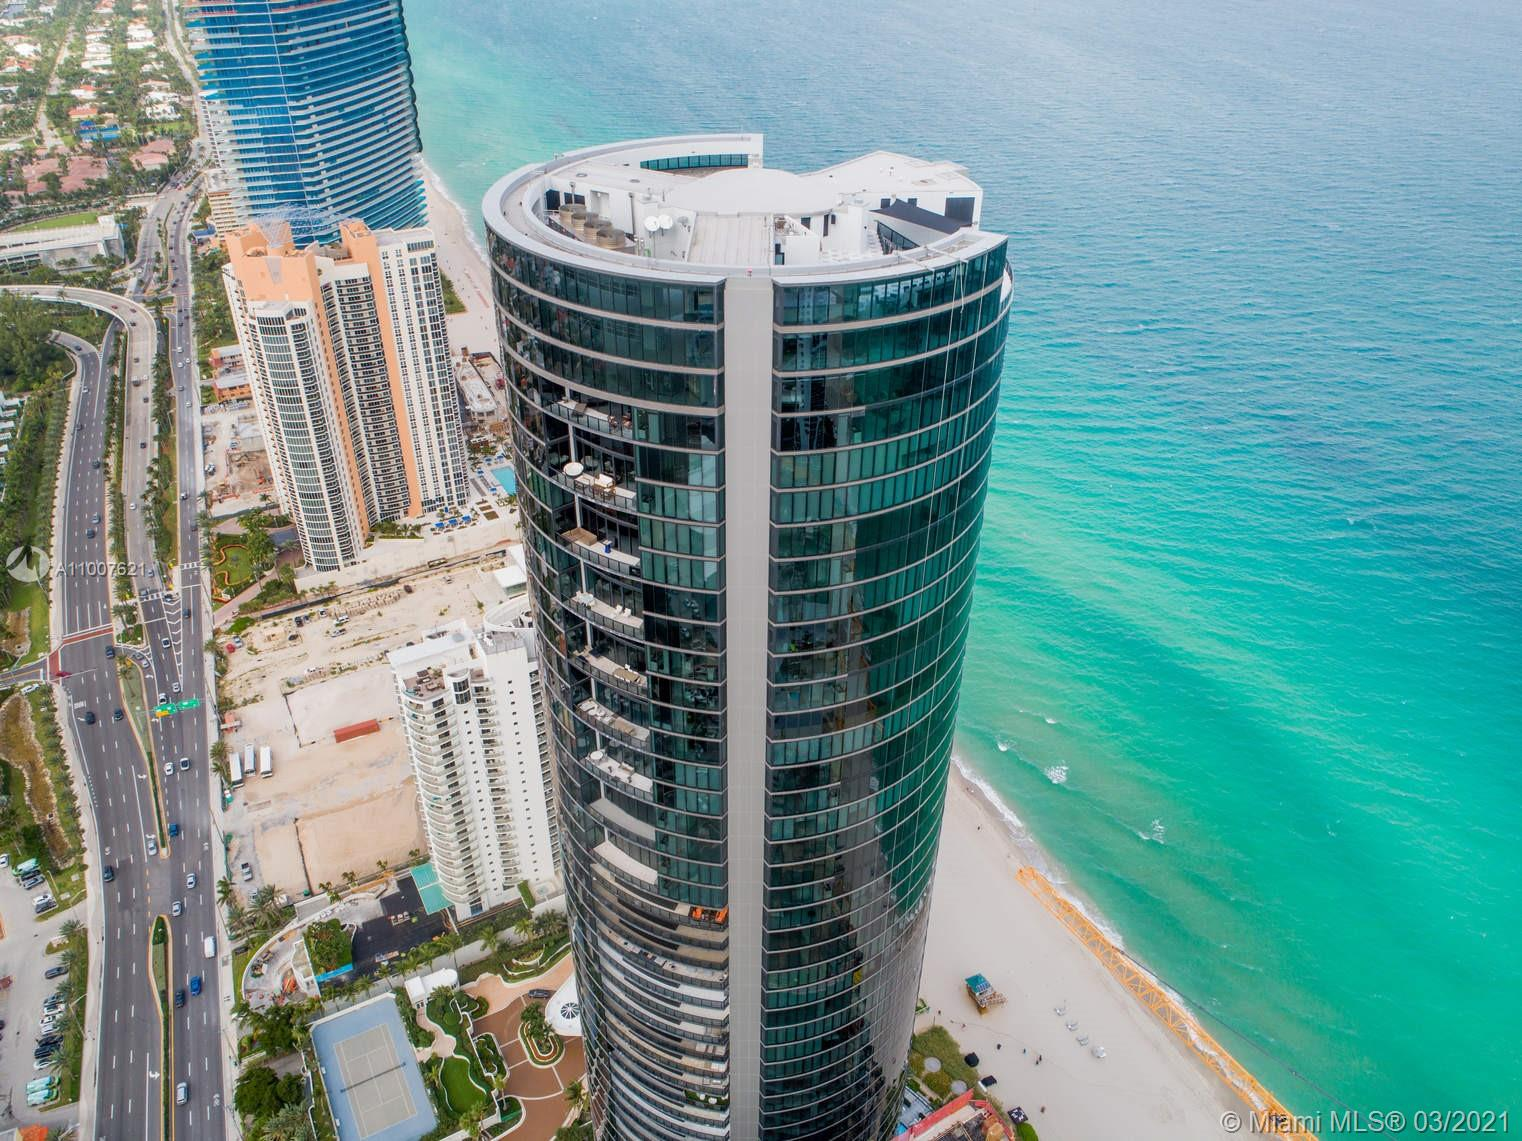 Spectacular professionally furnished unit at very exclusive and sophisticated Porsche Design Tower, in Sunny Isles Beach. The residence has unobstructed ocean and city views, a private pool in the balcony, and a barbecue grill. Park your car at ground level and a car lift will bring it to your floor. You may come in and out without notice, as the mechanism is self-accessible. The building offers countless amenities such as spa and fitness center, entertainment room, restaurant and bar, beach and pool service, to name a few. *Showings only after June 1st*